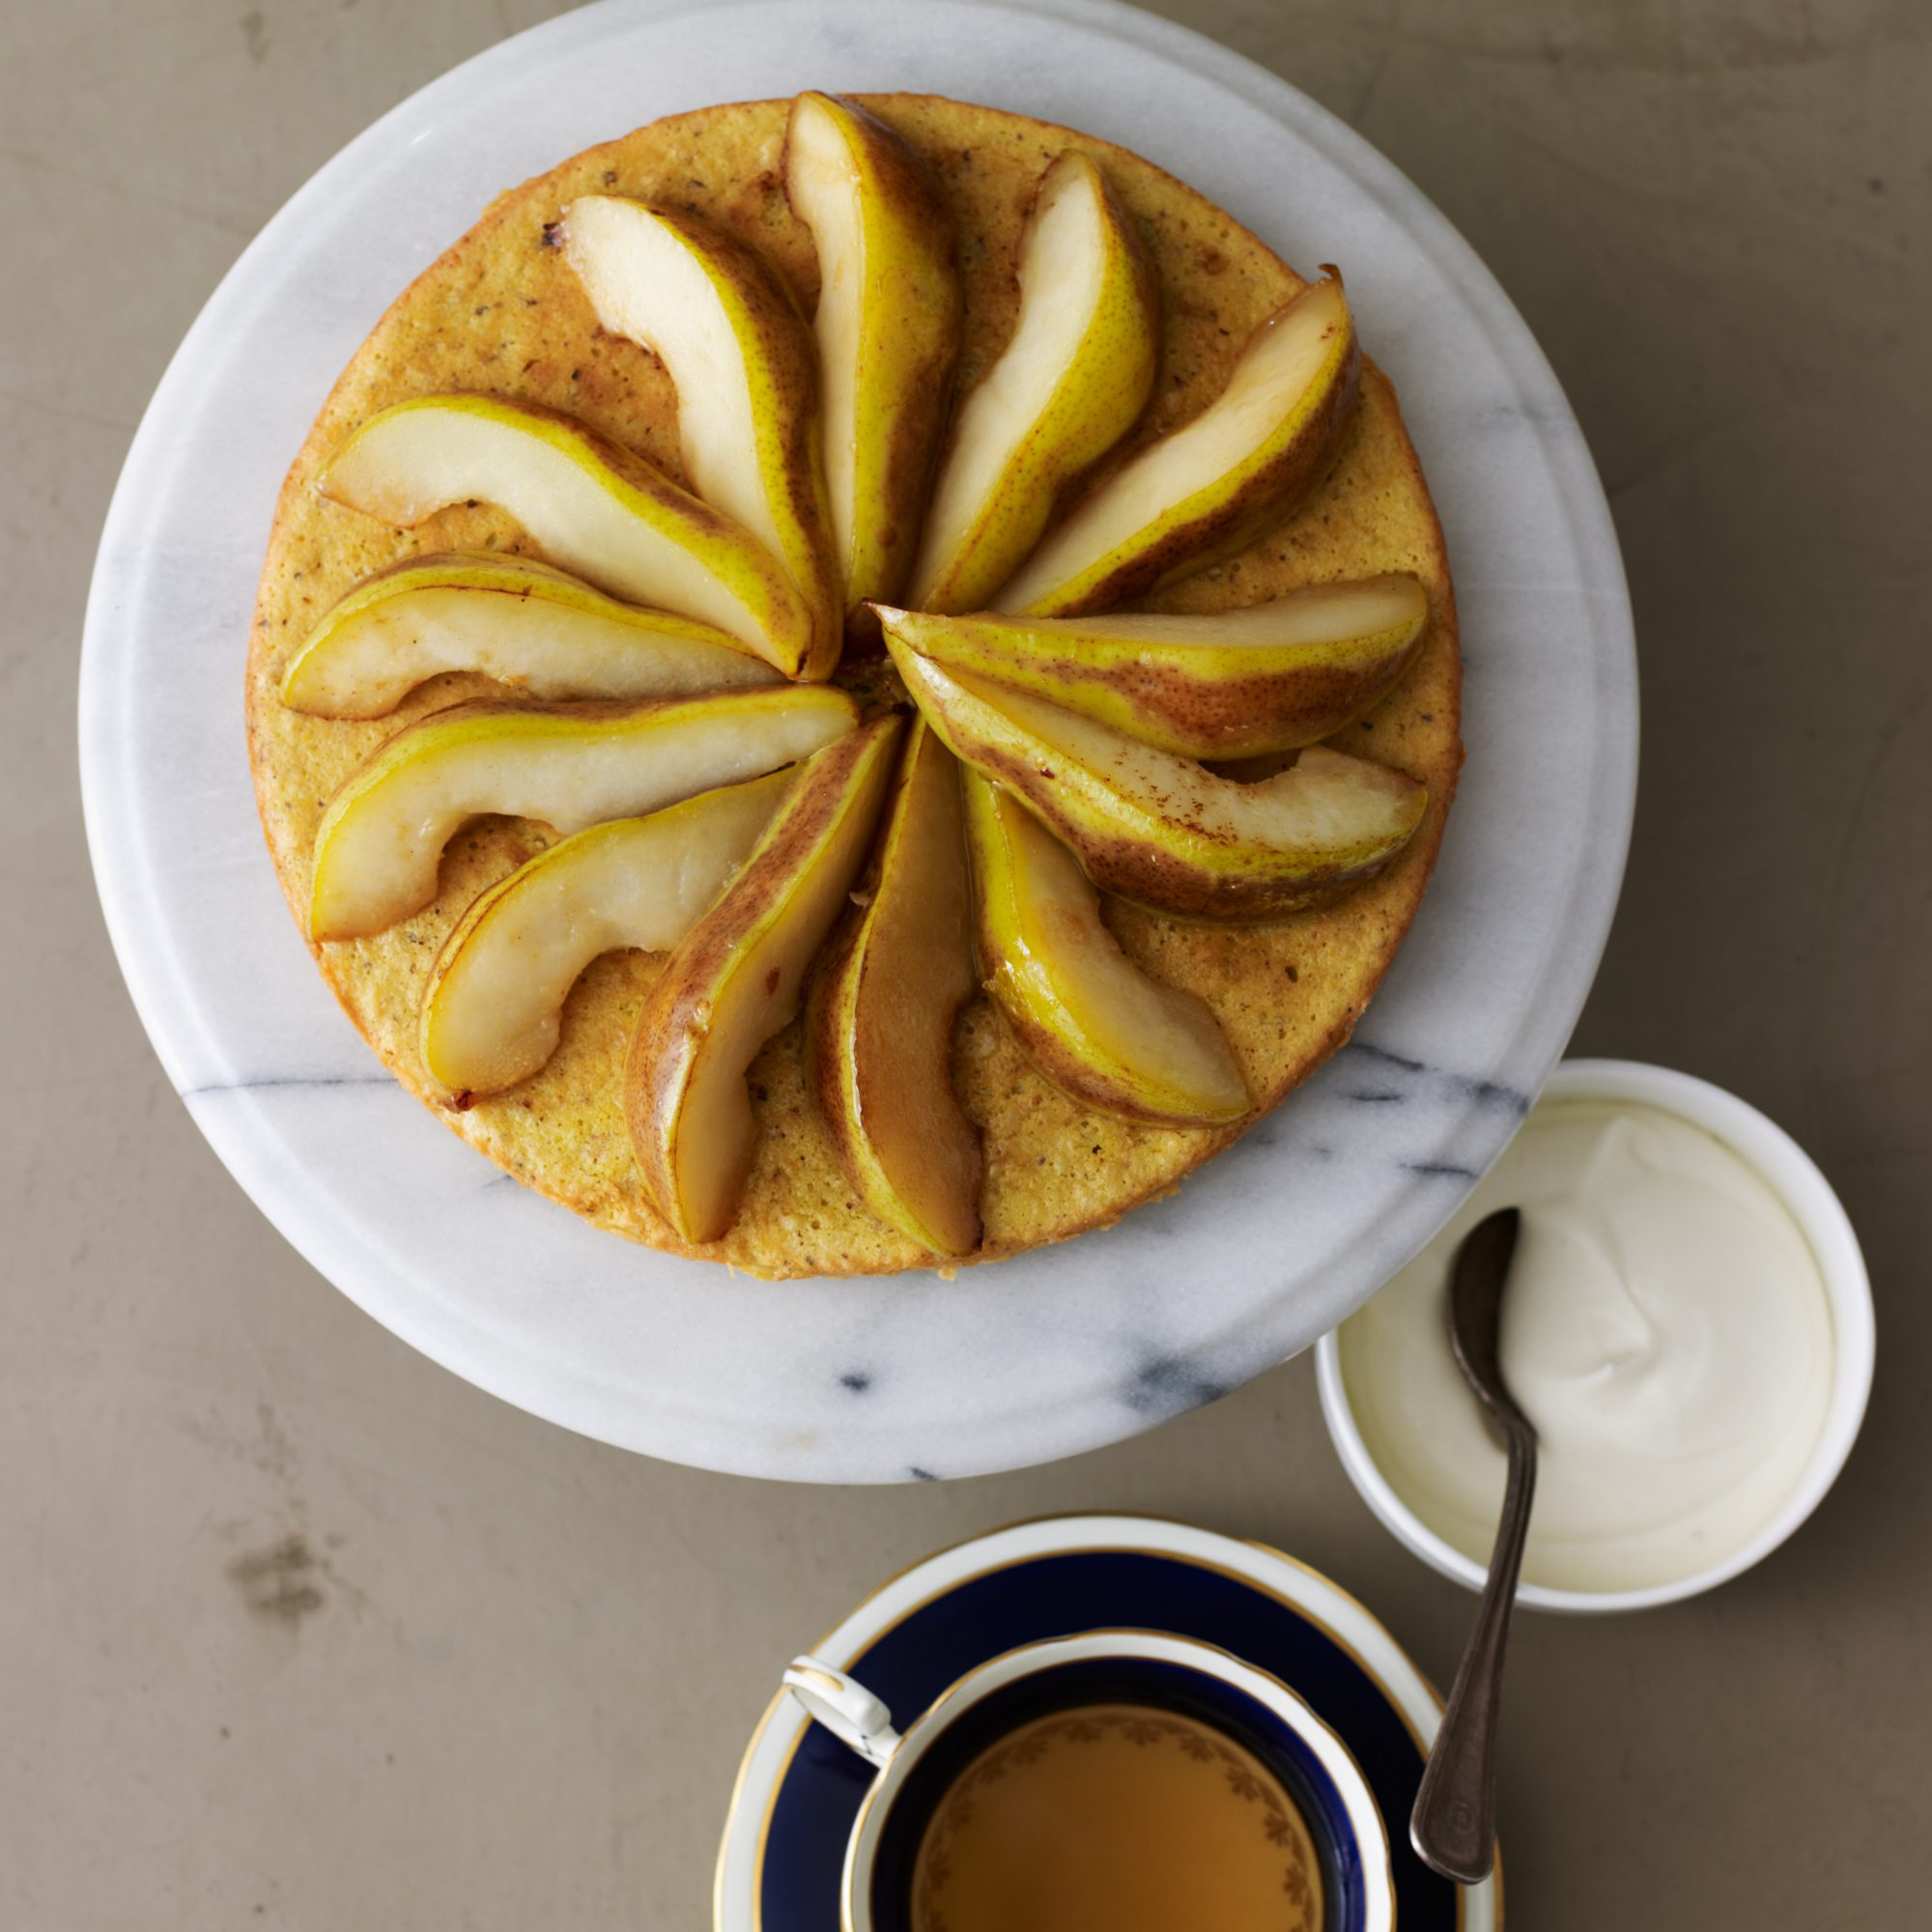 images-sys-201202-r-hazelnut-tea-cake-with-moscato-pears.jpg